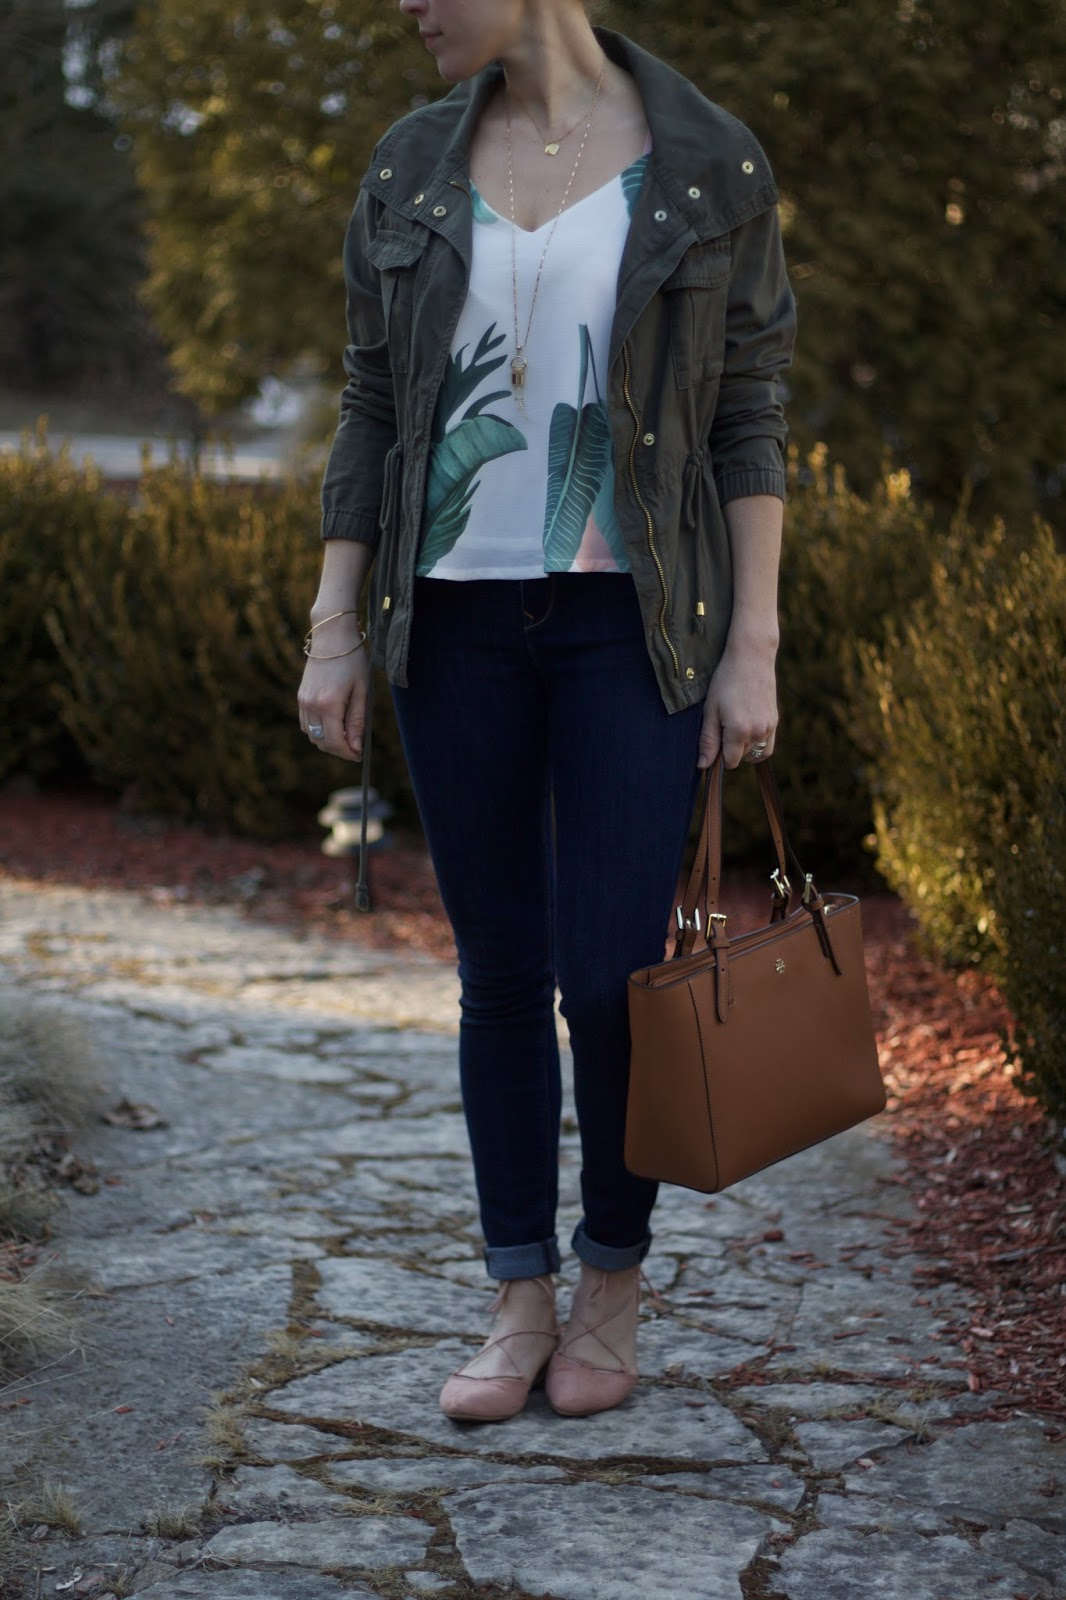 spring time look with layers, palm print cami, olive green utility jacket, Tory Burch tote, blush lace up flats